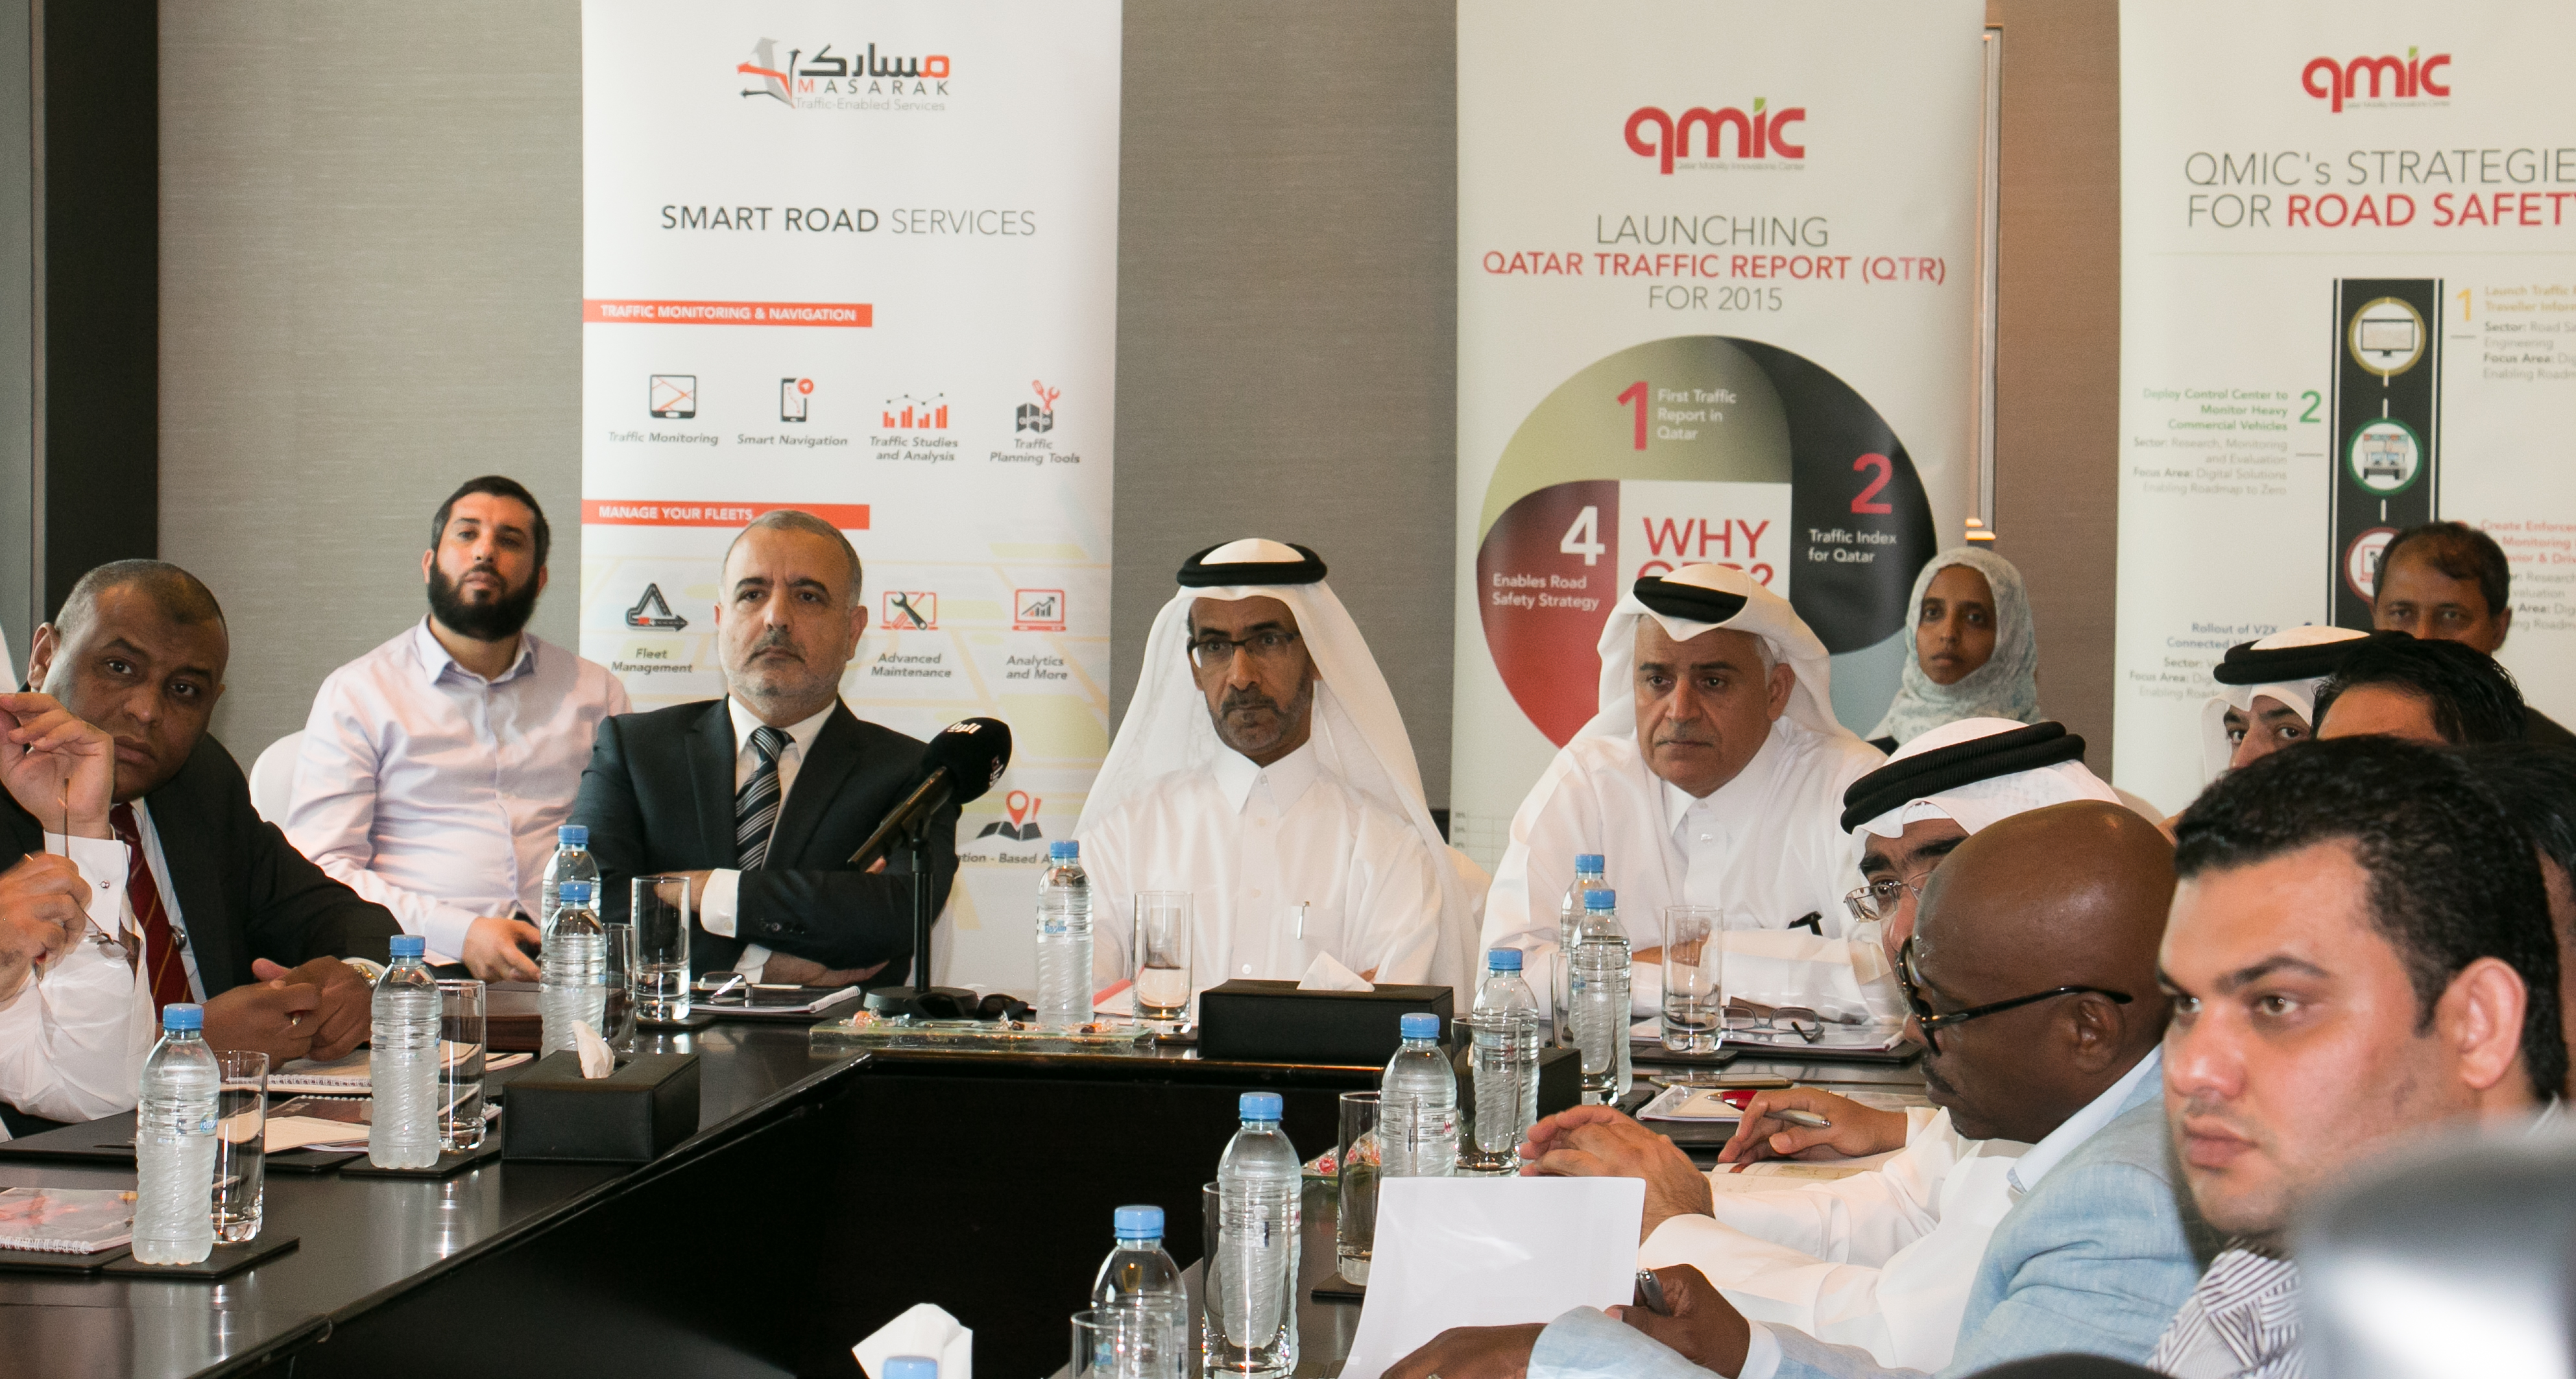 QMIC Launches the First Qatar Traffic Report: Insightful Discoveries About Traffic Congestion & Impact in 2015 Commuters Wasted 102 Hours Due to Congestion, Economic Impact of QR 5-7 B